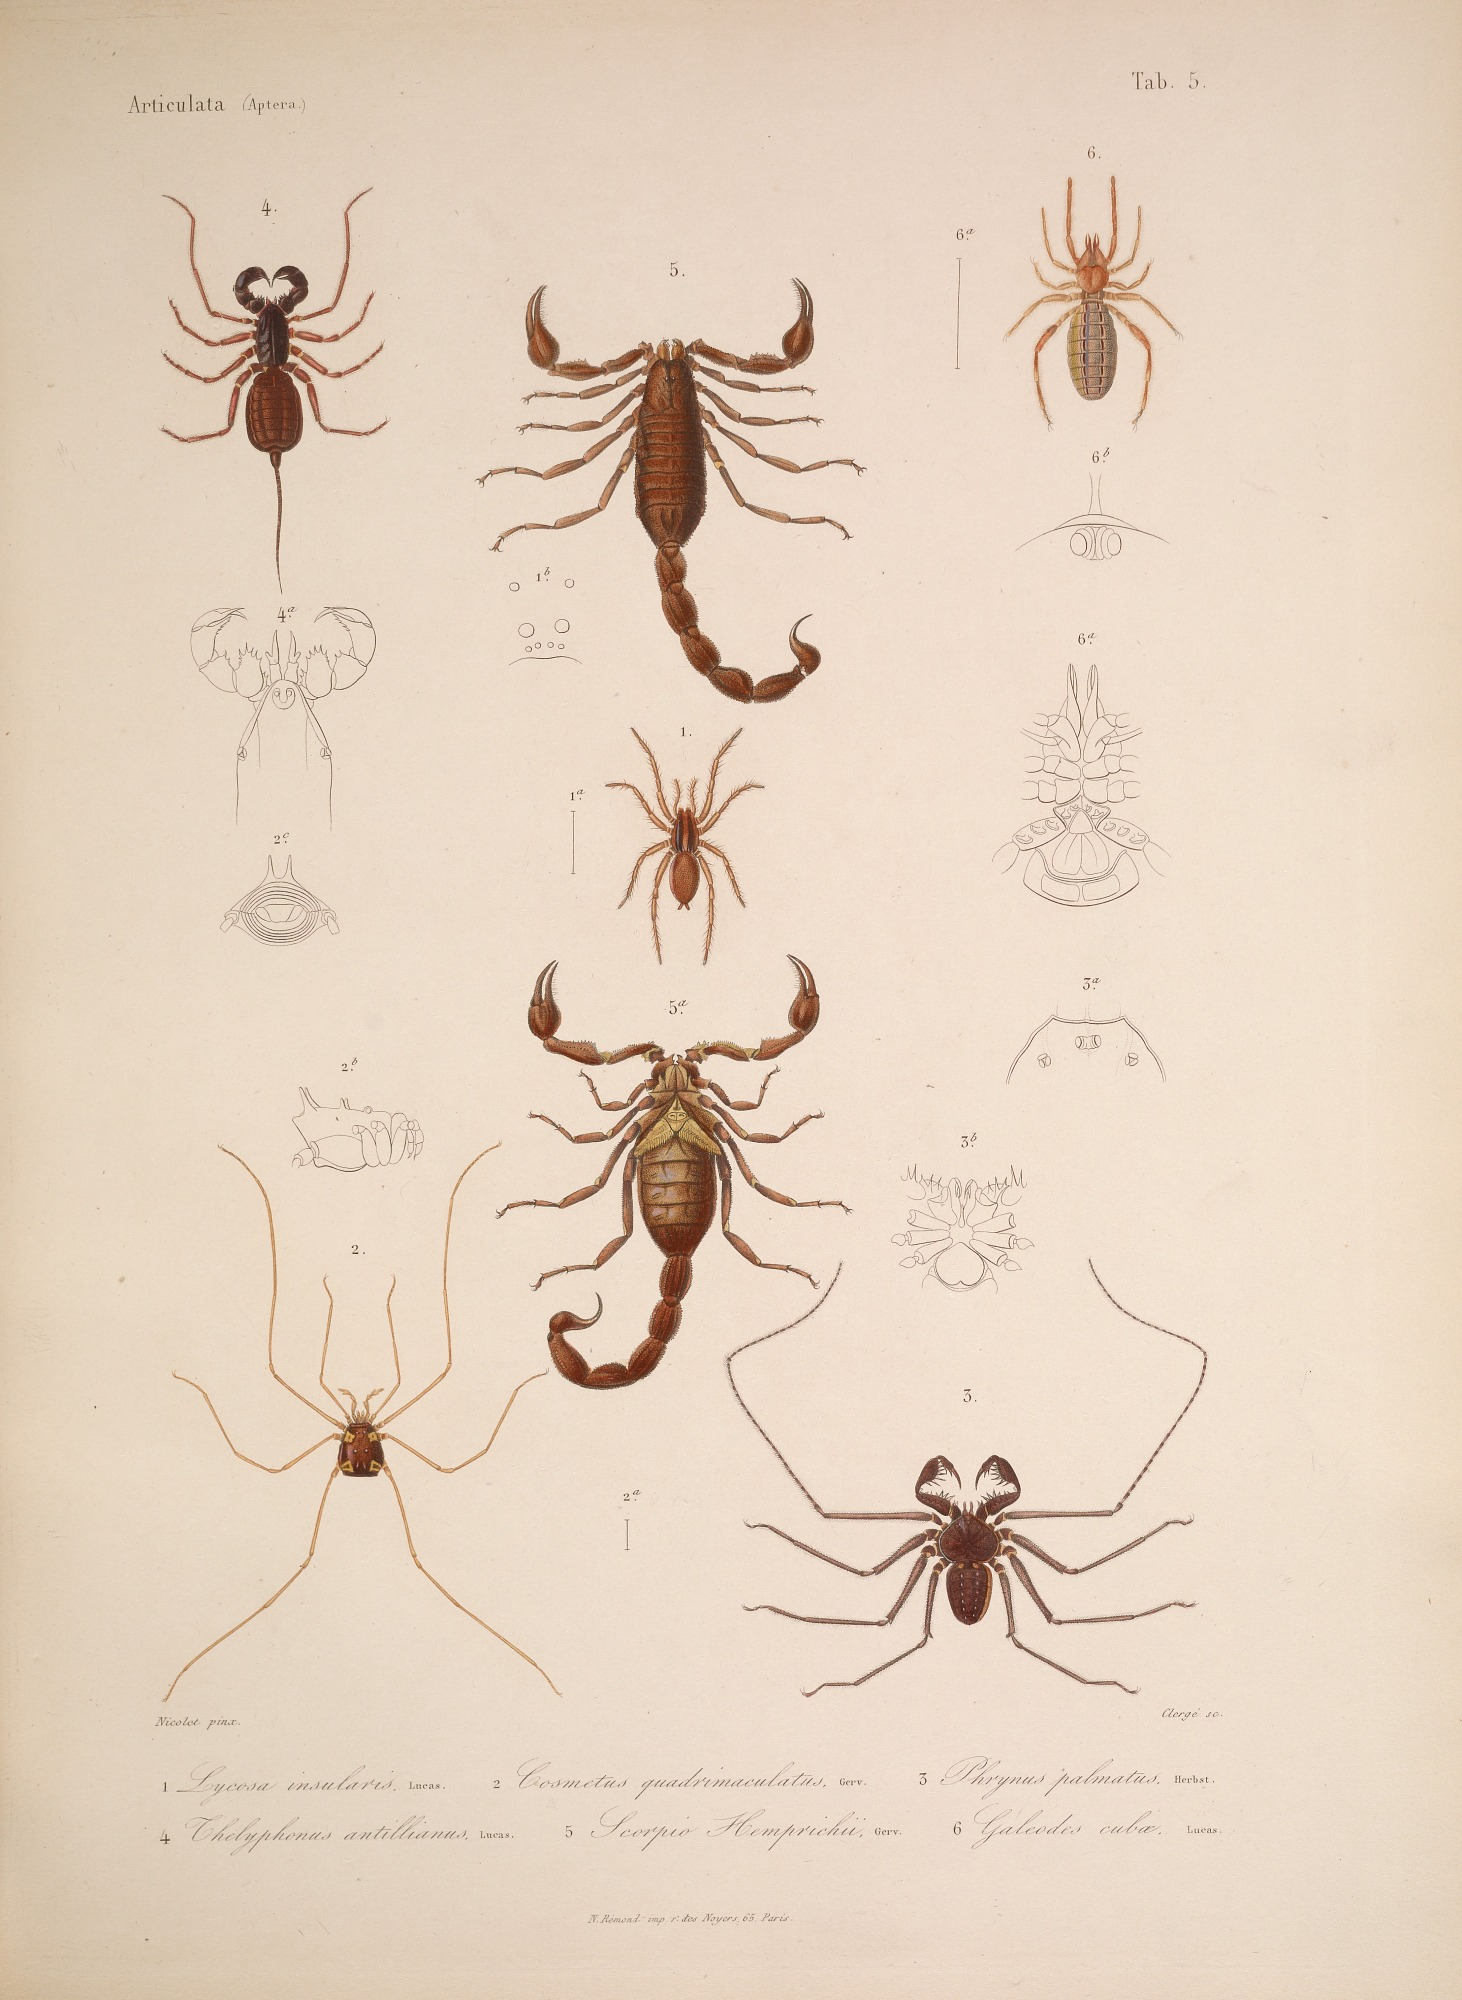 Species and anatomy of Cuban spiders and scorpions.